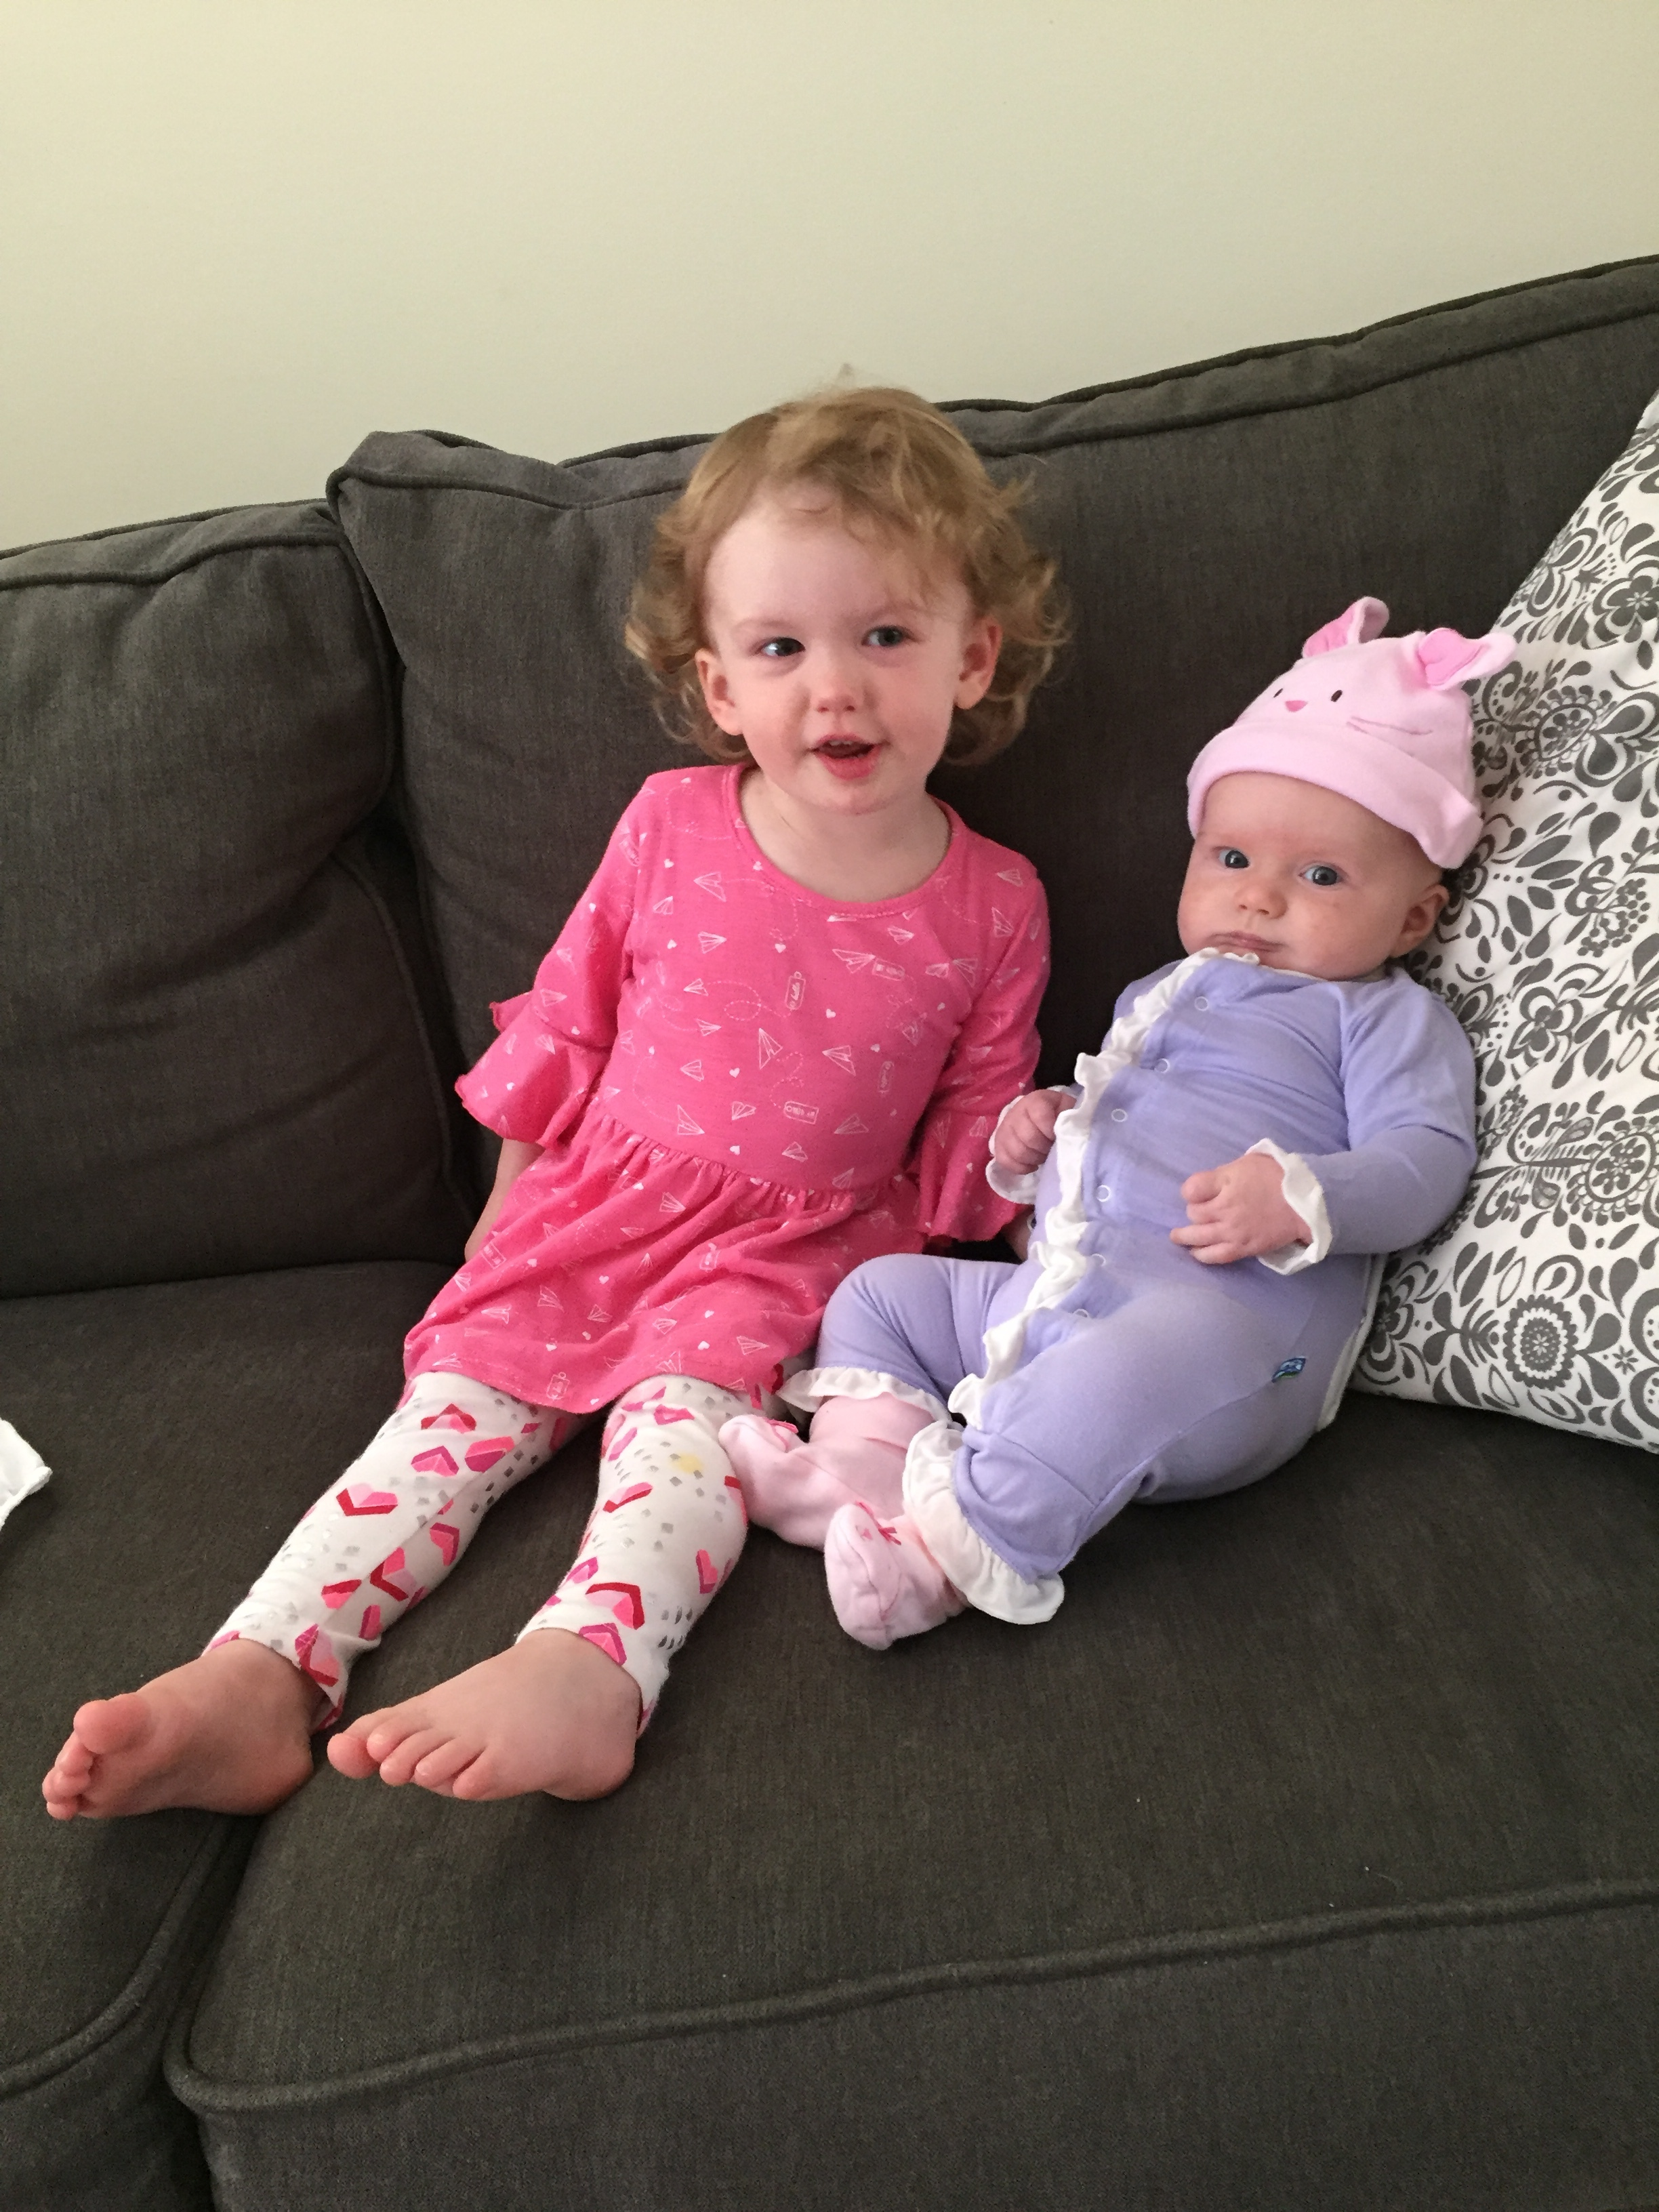 Abigale and Hadley last Easter. April 1, 2018.